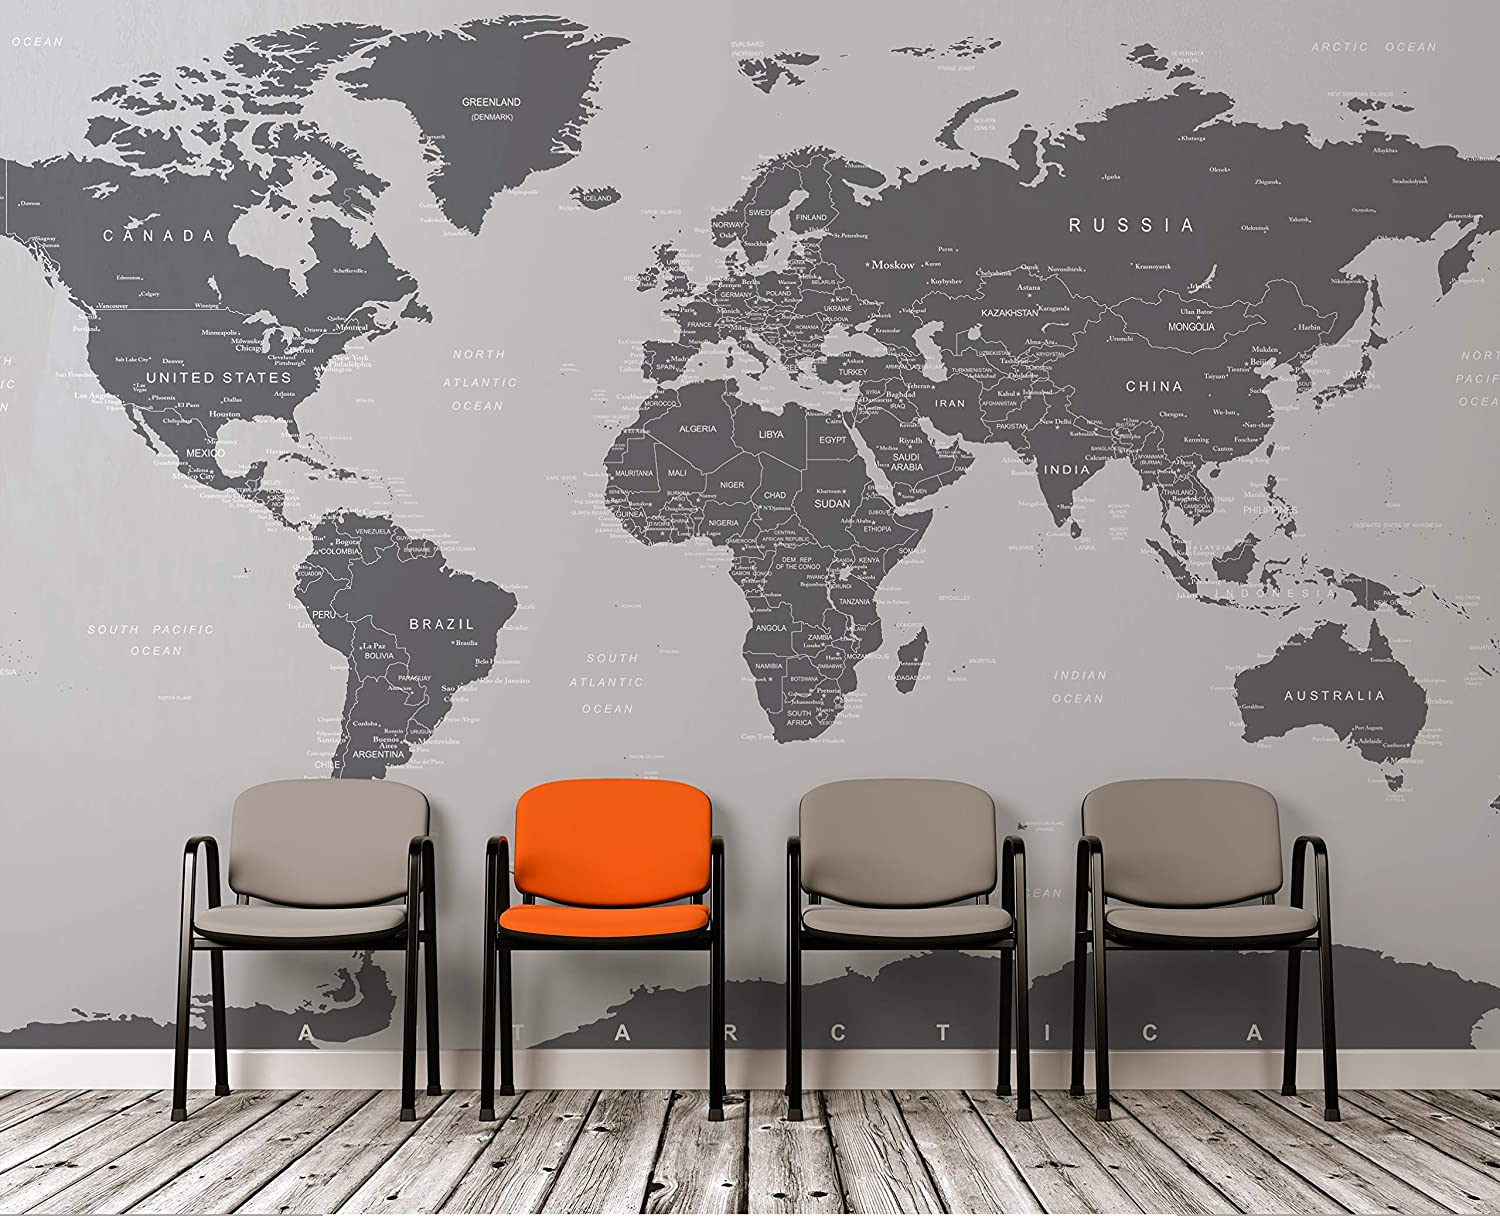 World Map Wall Mural Amazon.com: Large Grey World Map Wall Mural. Simple Peel Stick